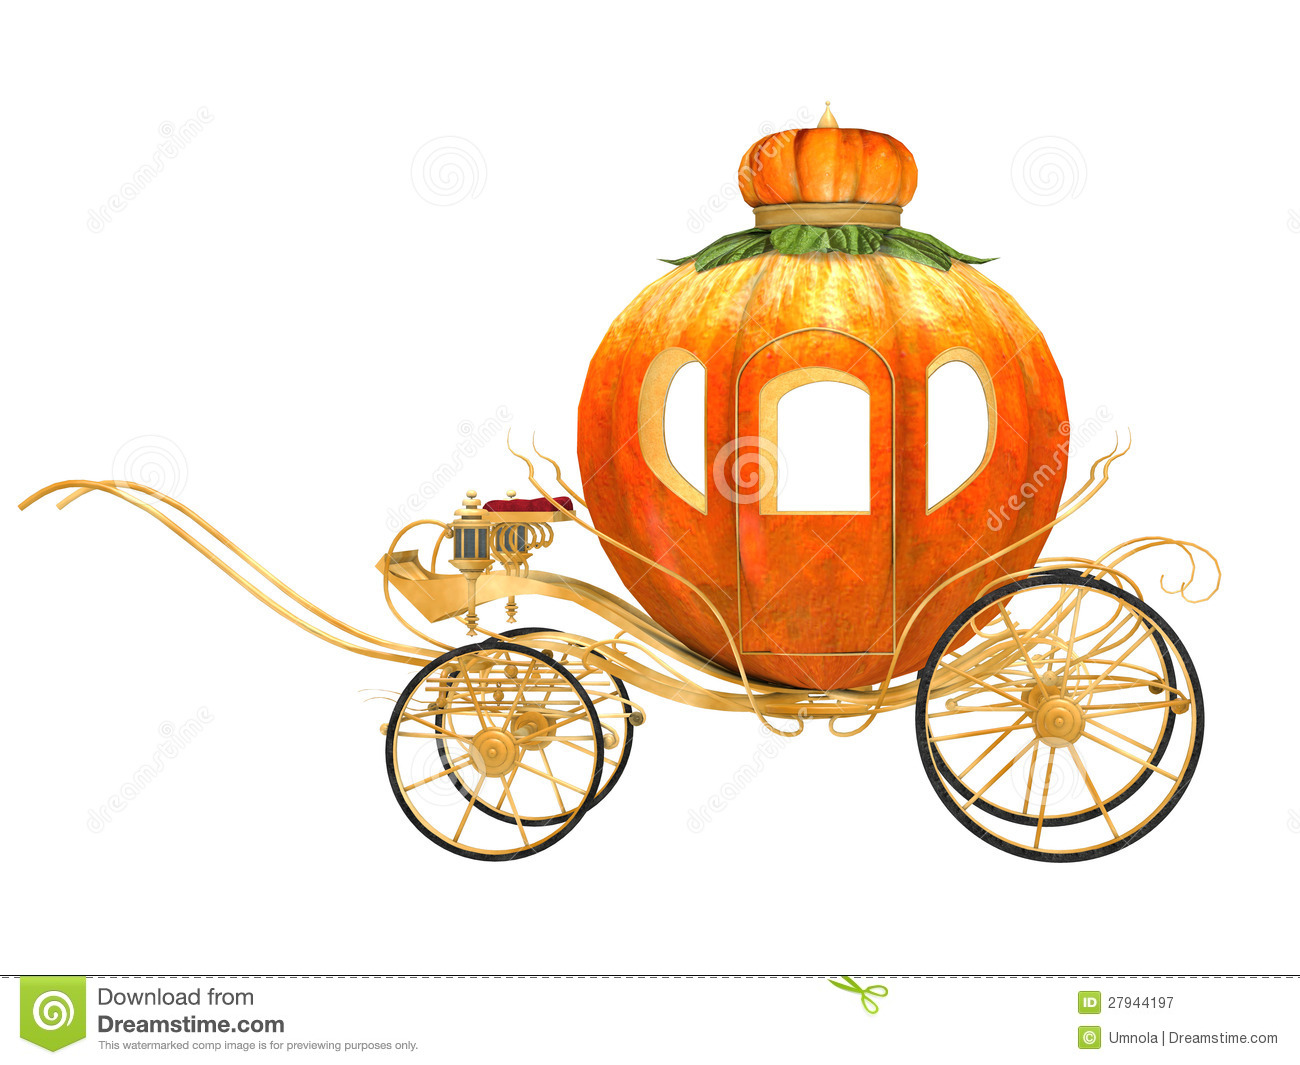 Cinderella Fairy Tale Pumpkin Carriage Royalty Free Stock Photography